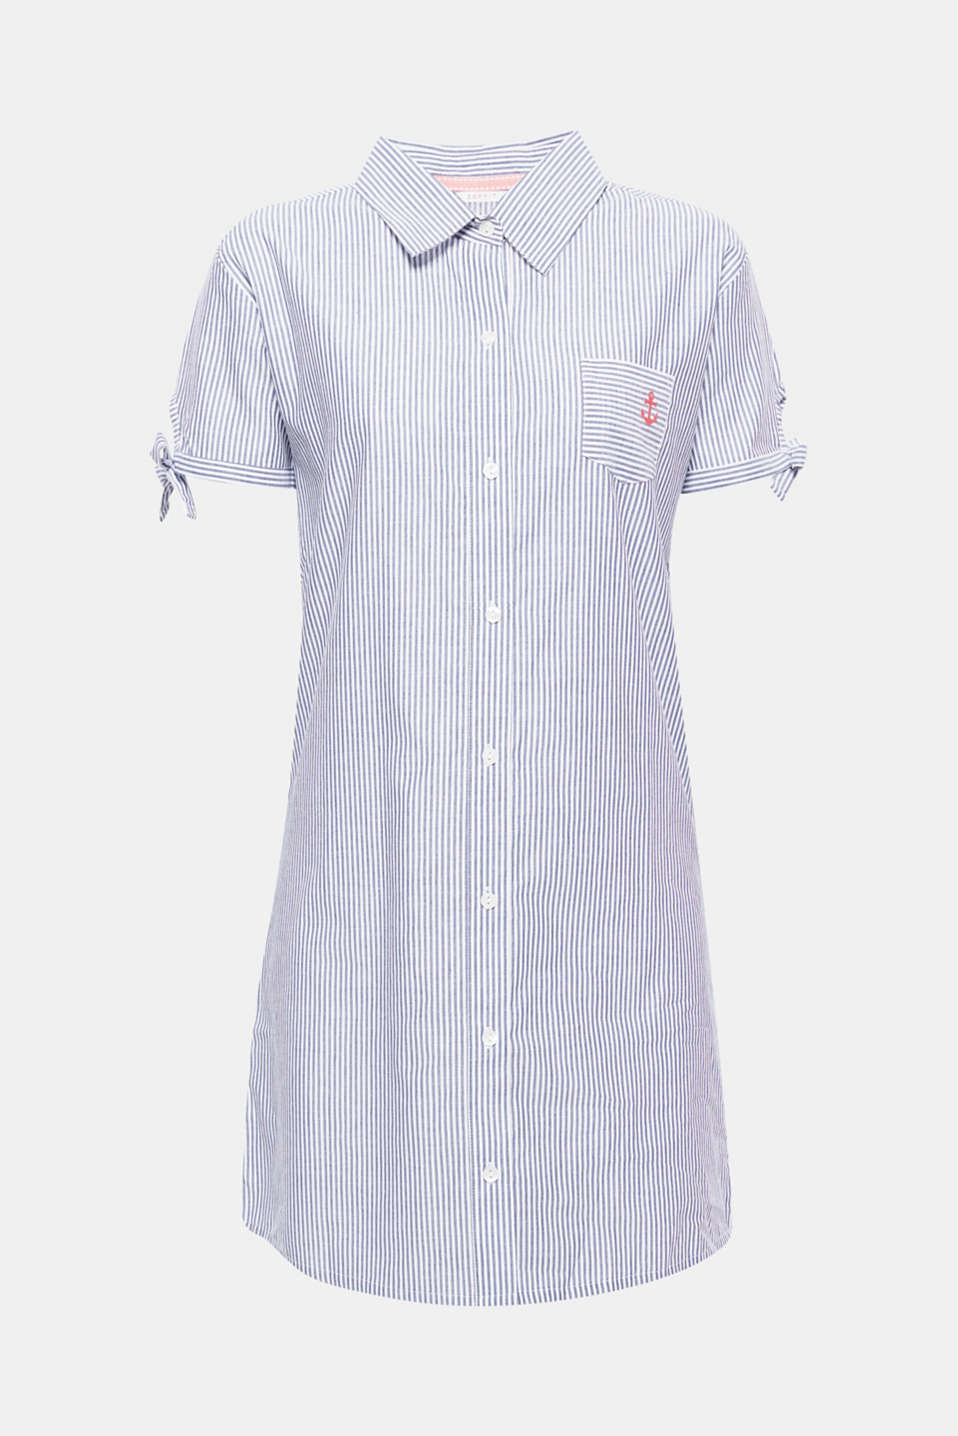 What could be lighter and more comfy? Striped nightshirt in ultra lightweight cotton fabric in a casual boyfriend style.